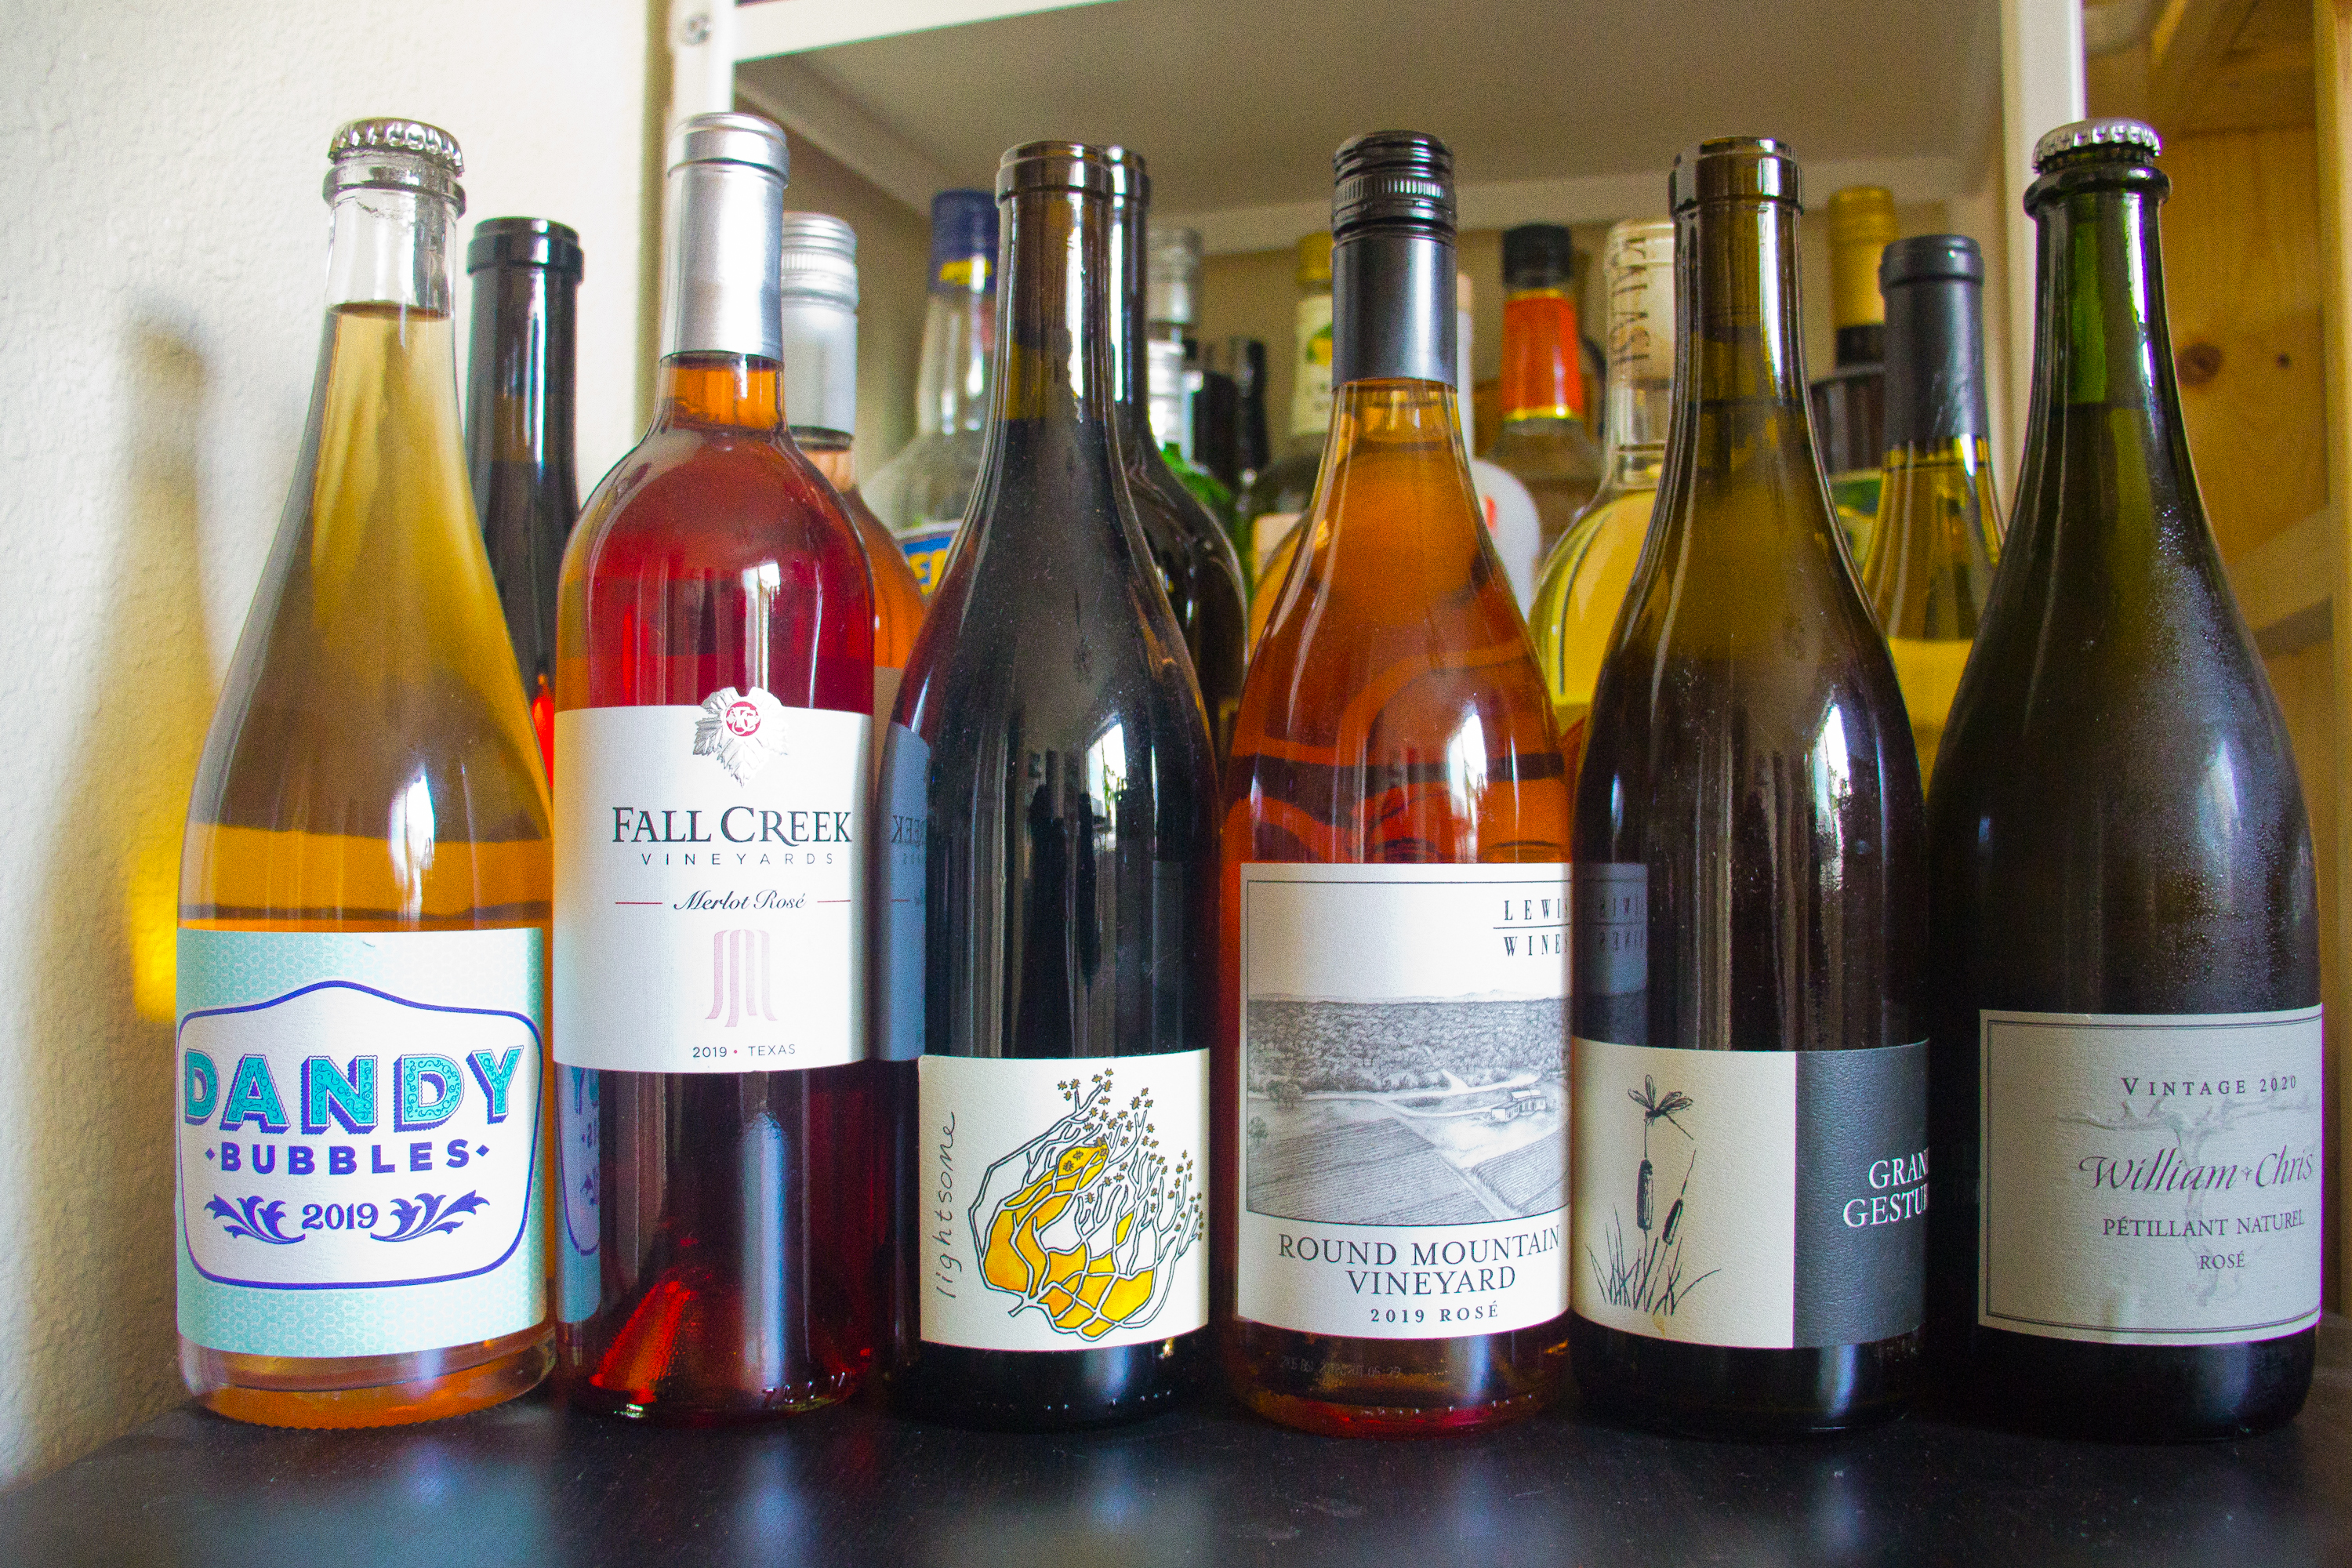 """A group of wine bottles ranging from rosés to whites to reds, with labels reading """"Dandy Rose,"""" """"Fall Creek Vineyards,"""" an abstract yellow-white-black image, """"Round Mountain Vineyard"""" and an image of a vineyard acre, an illustration of a weed and a flying insect, and """"William Chris Petillant Natural."""""""